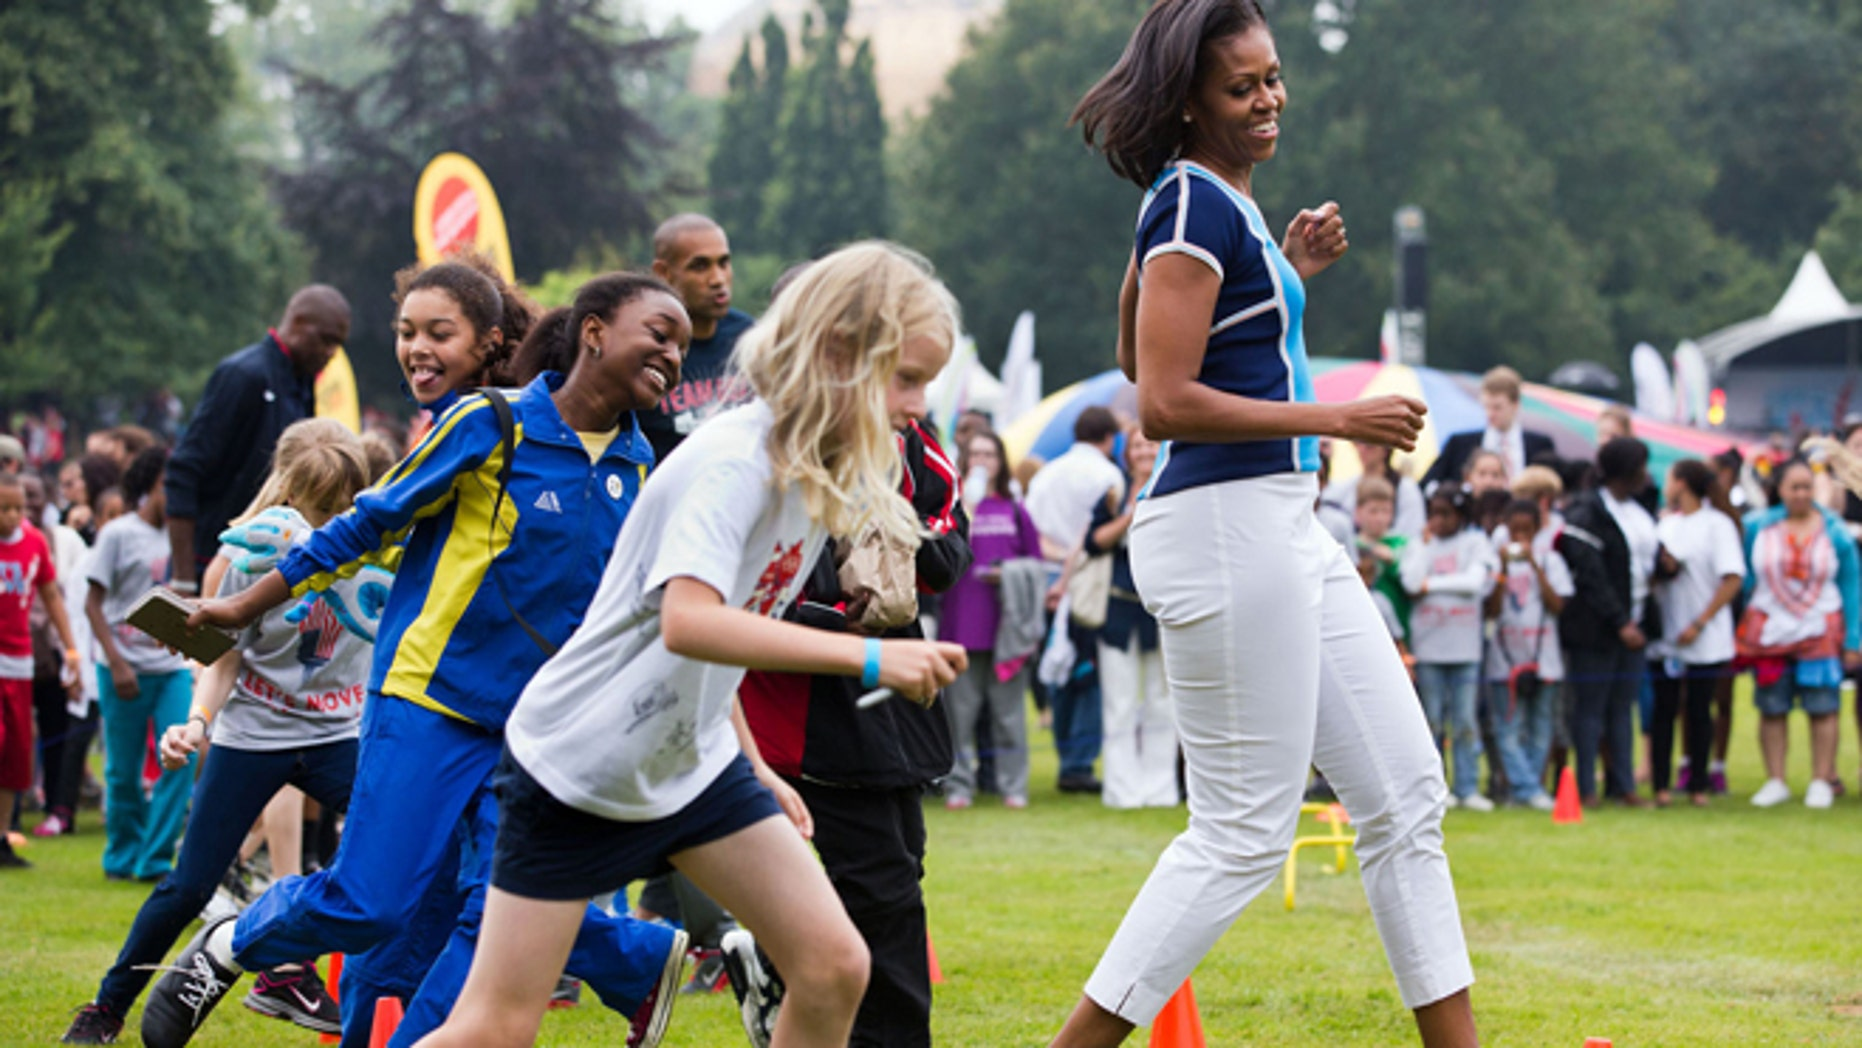 First lady Michelle Obama runs at an activity station during a ìLetís Move! London event at Winfield House in London.